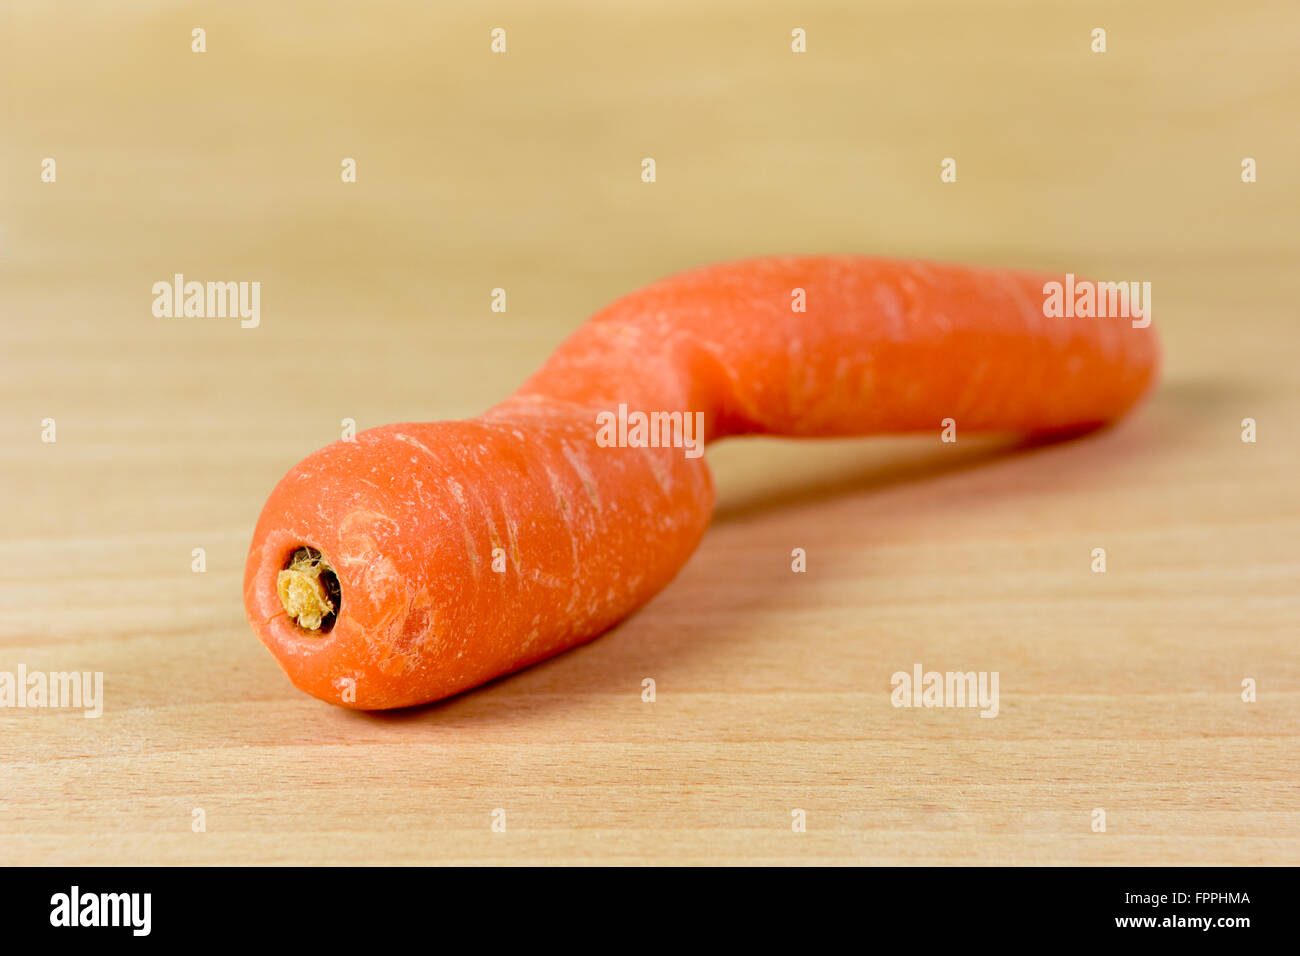 Deformed and misshapen carrot on on chopping board - Stock Image